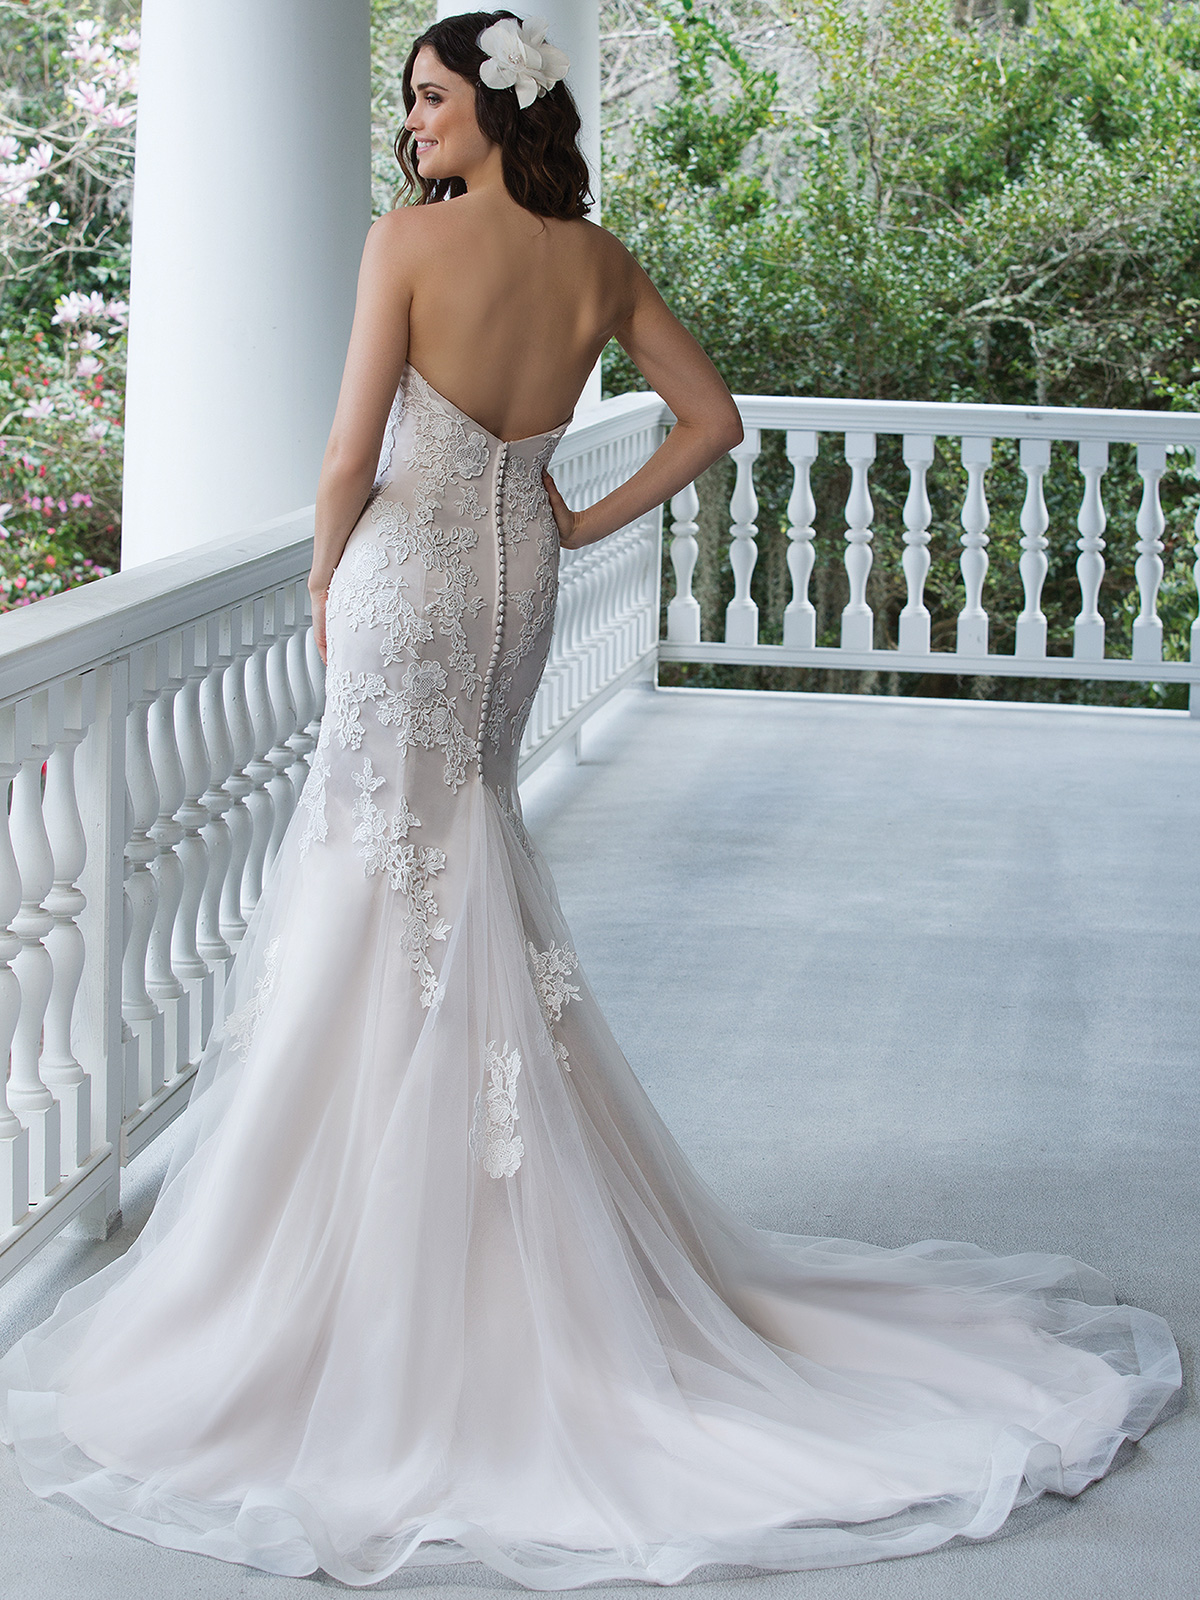 Sincerity 3942 Tulle Fit And Flare Bridal Dress|DimitraDesigns.com